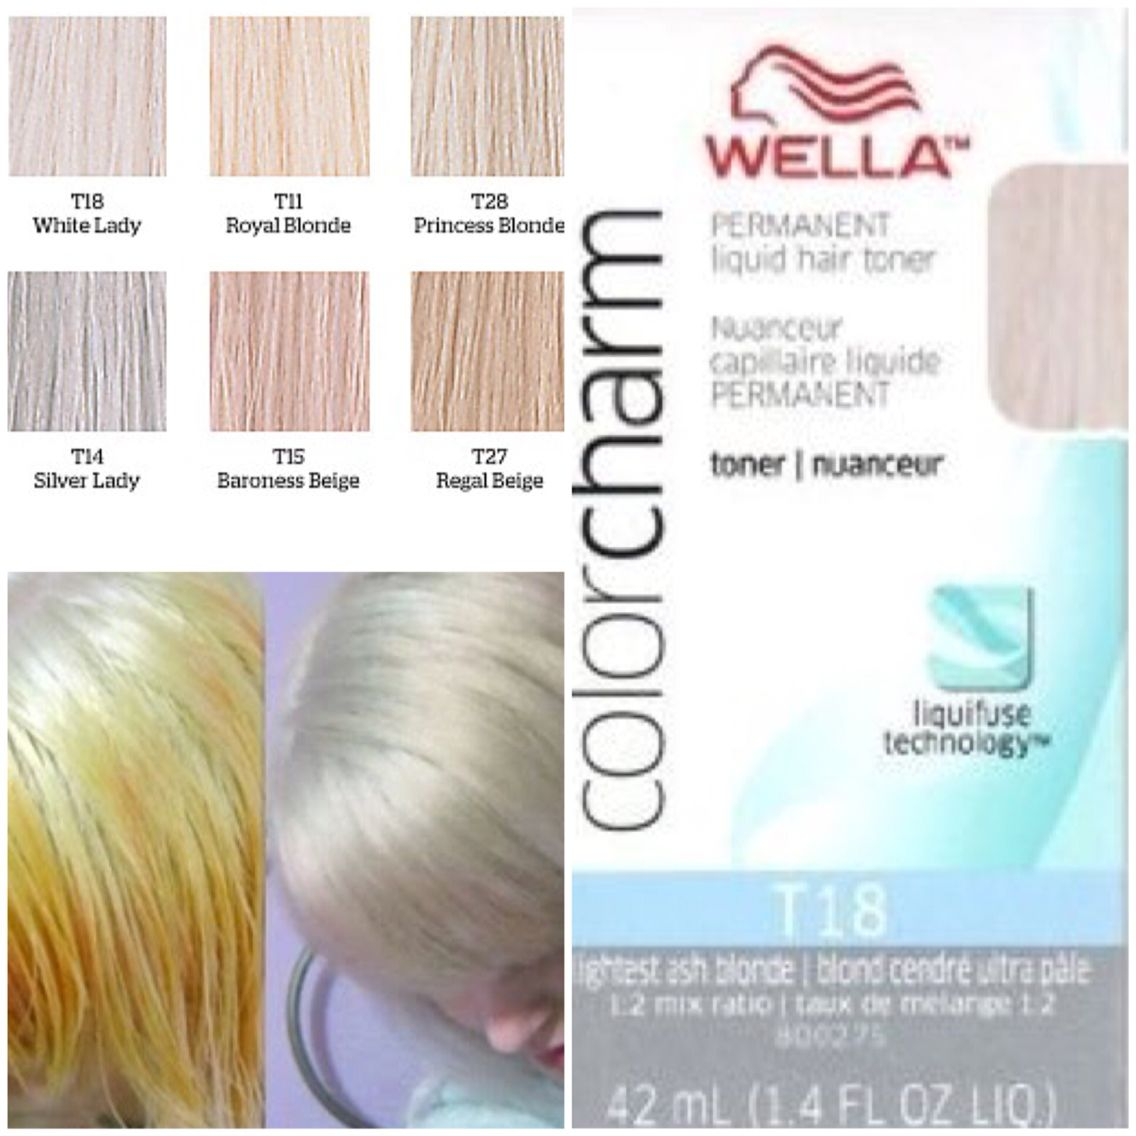 Wella T-18 toner for BLONDE/PLATINUM hair! Pre-lighten the hair with